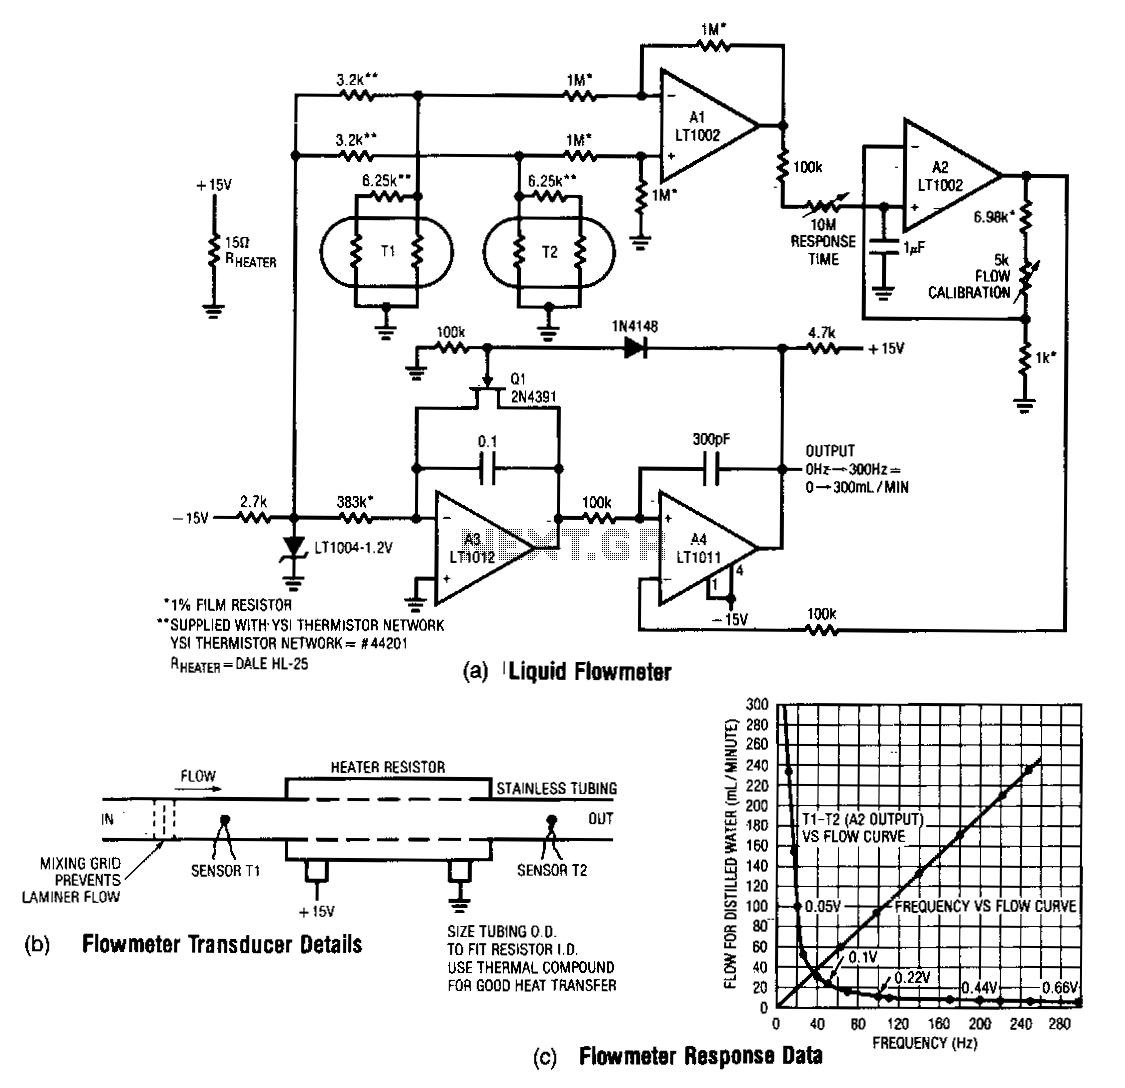 Low-flow-rate-thermal-flowmeter - schematic